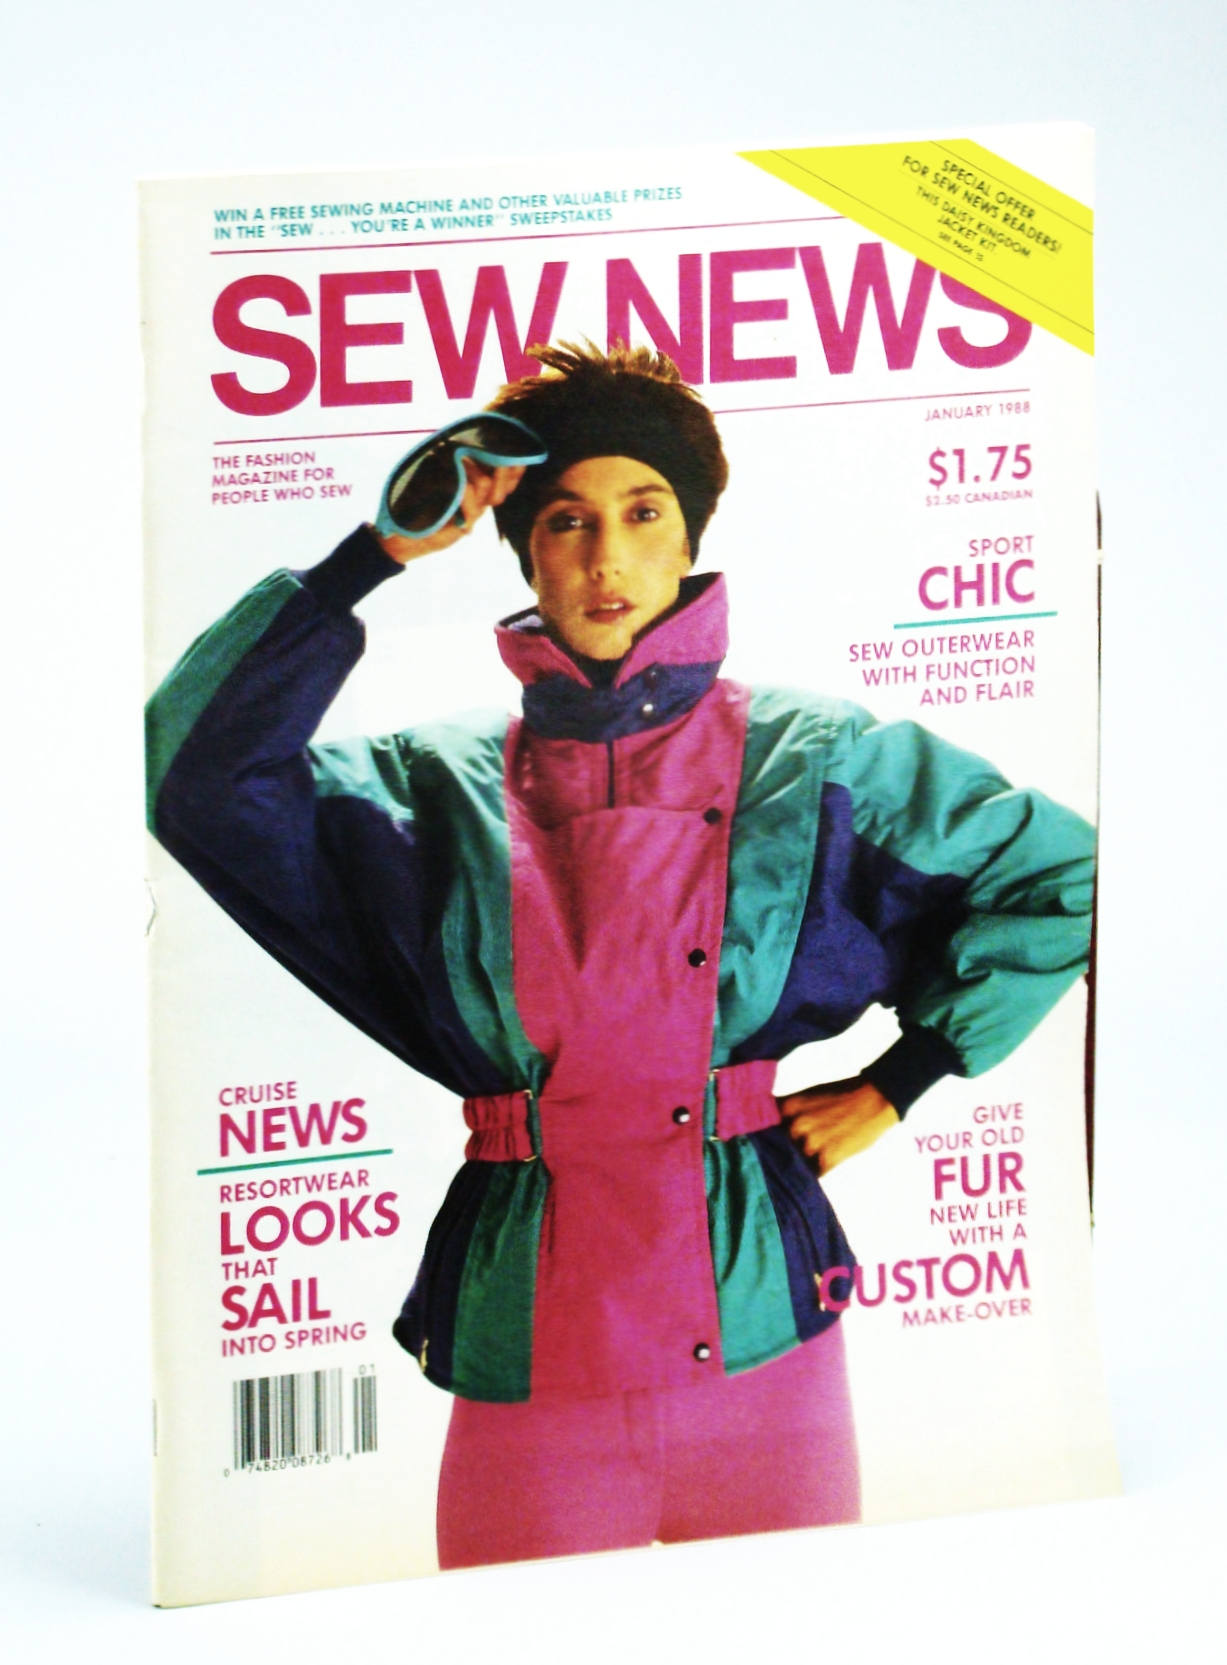 Image for Sew News - The Fashion Magazine For People Who Sew, Number 64, January [Jan], 1988 - Kerstin Martensson Interview